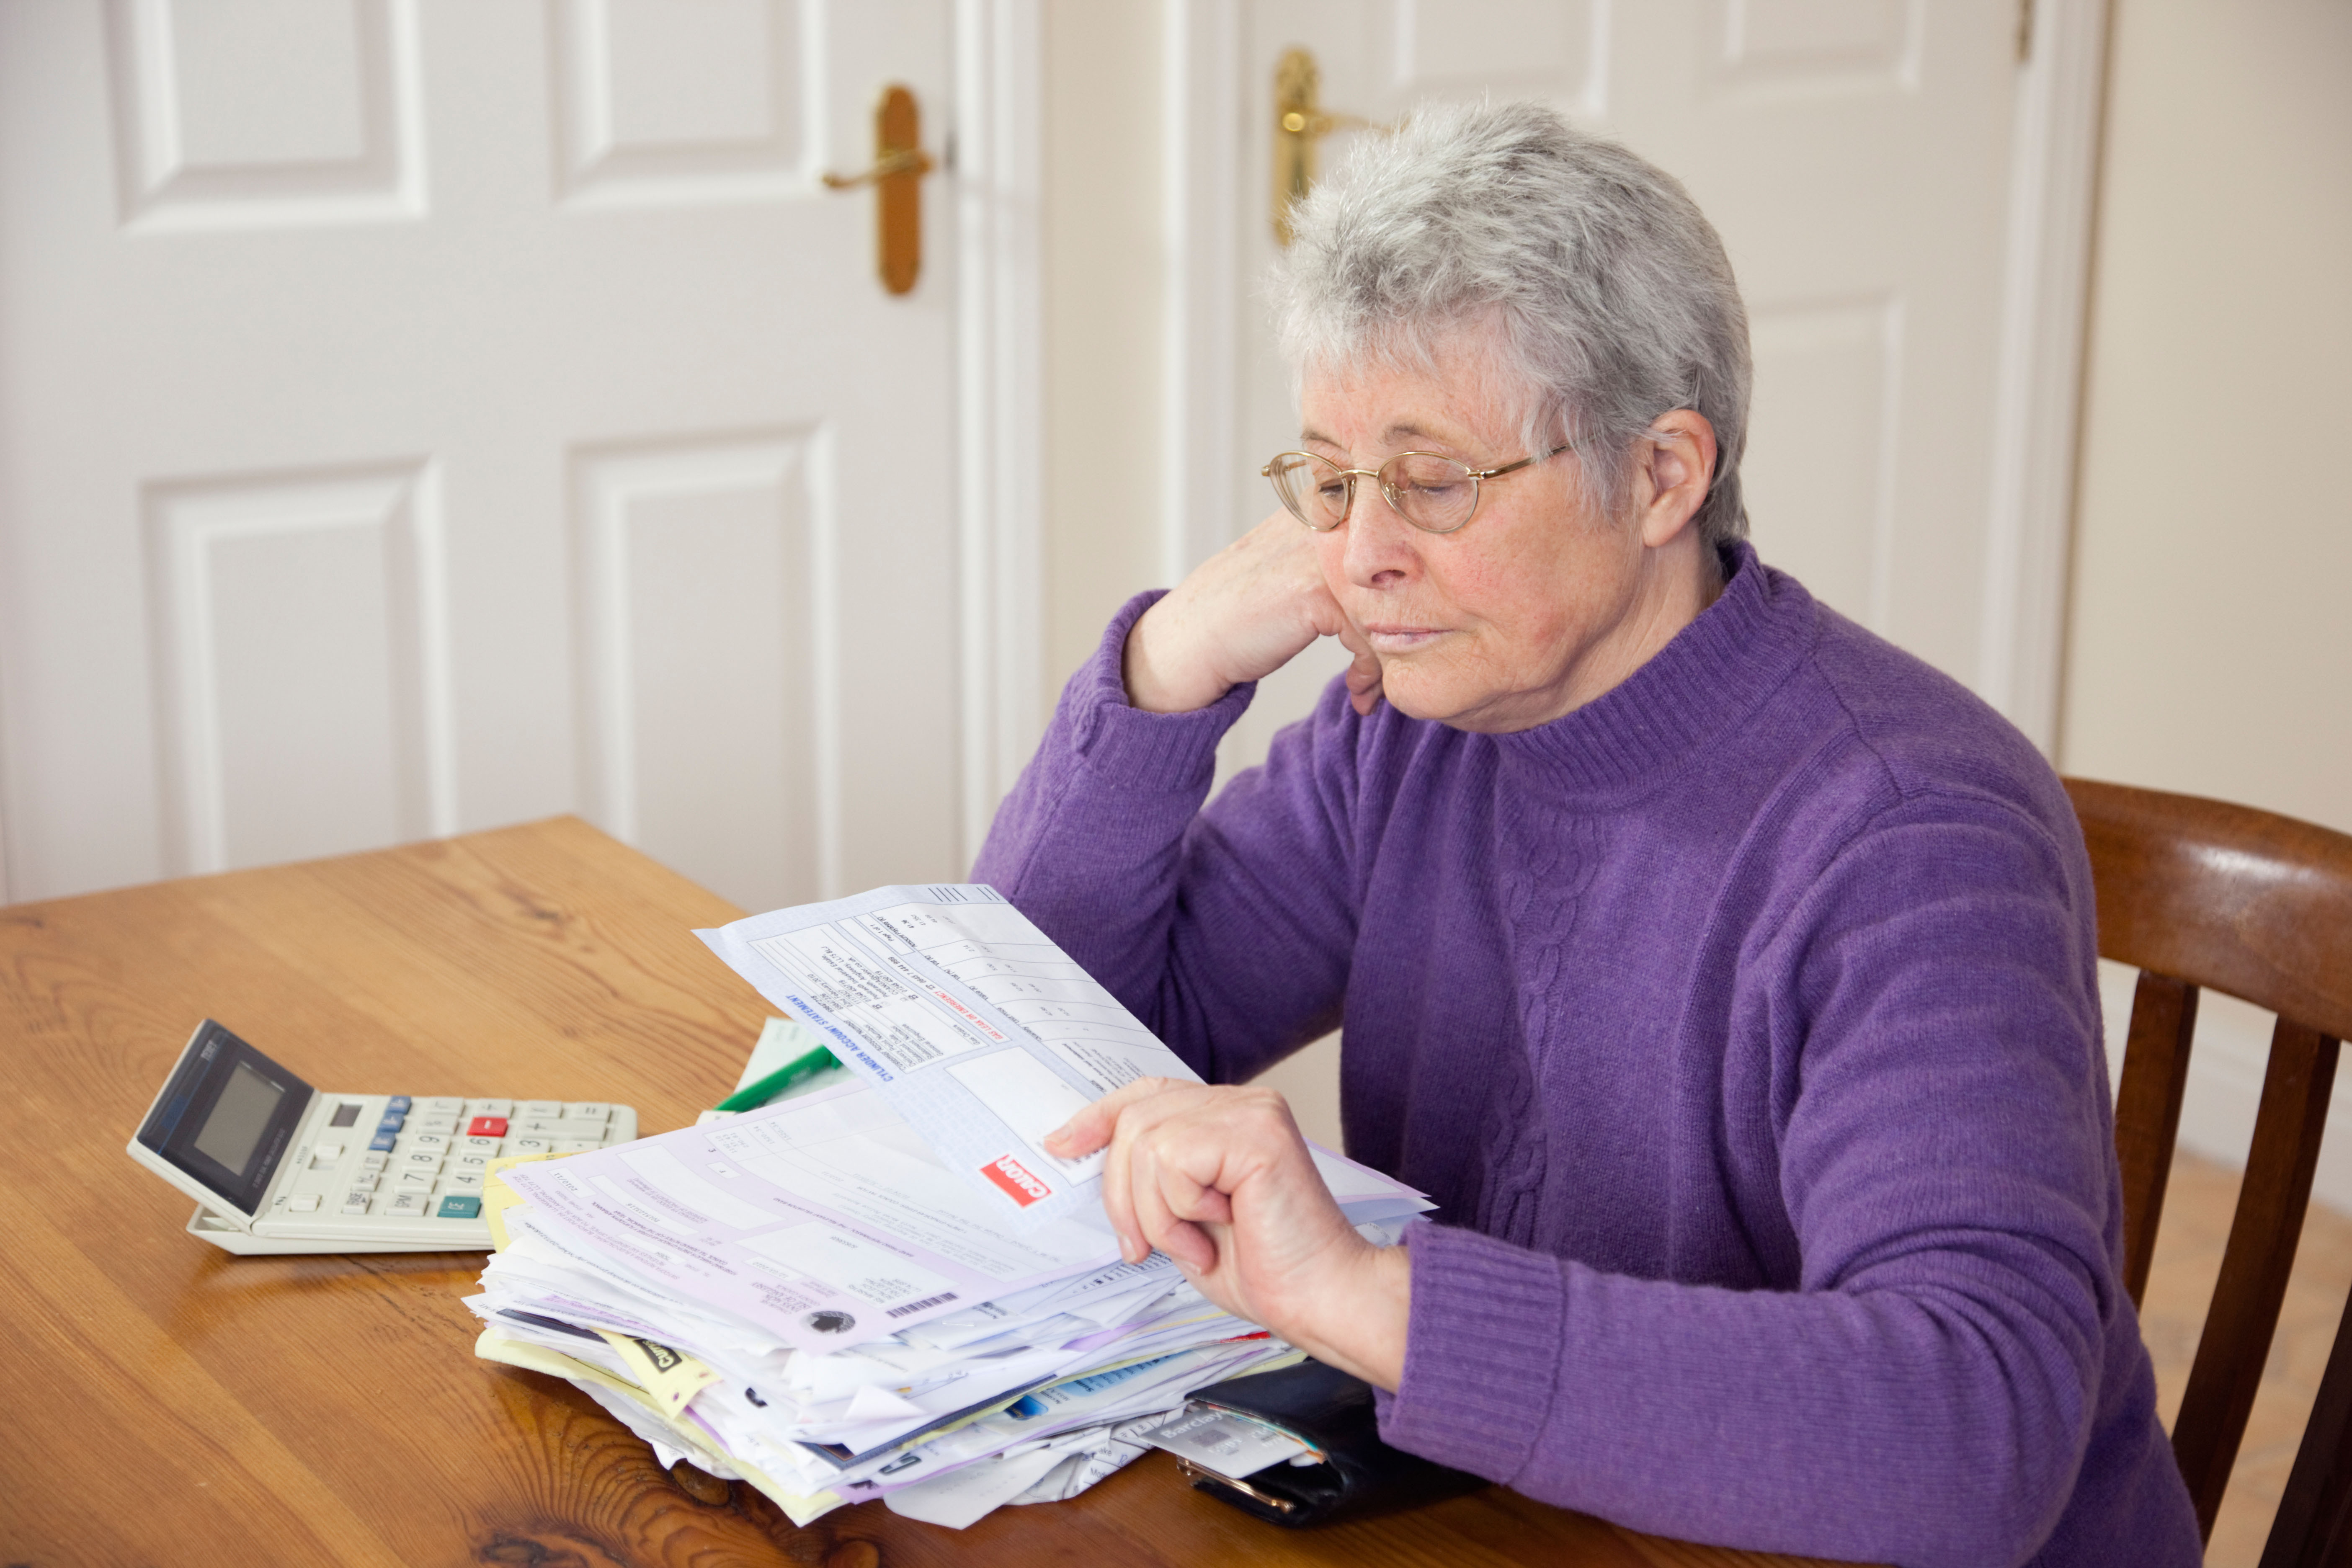 Pensioners are missing out on an average of £1,423 a year by failing to claim benefits